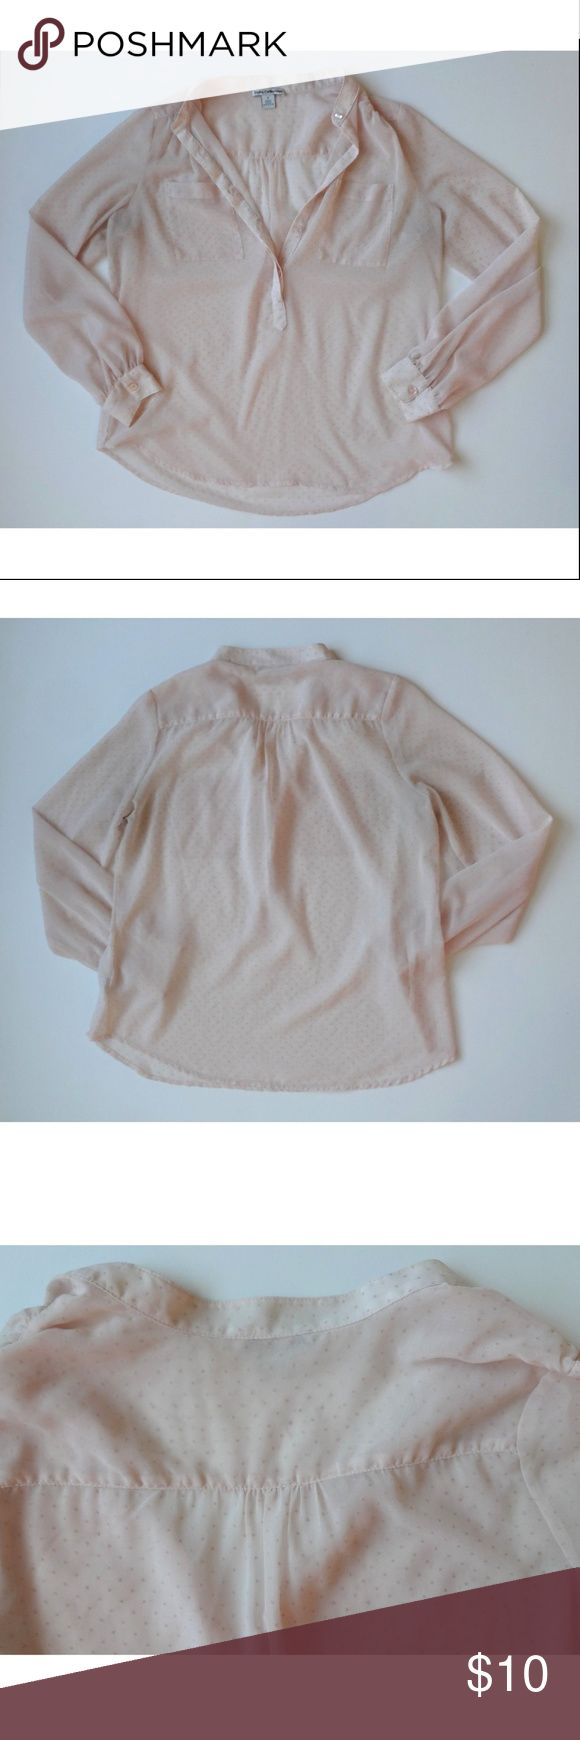 Dalia S Small Light Pink Sheer Swiss Dot Blouse Dalia Womens Light Pink Sheer Swiss Dot Blouse S Small L Large     Size as a small, but measures much bigger! These measurements are more like a large.    Bust: 43 inches (has a very loose fit) Waist: 44 inches Length from shoulder to hem: 25 inches     -Lightweight, sheer blouse with raised swiss dot print -2 front breast pockets -Puckered at shoulders Dalia Tops Blouses